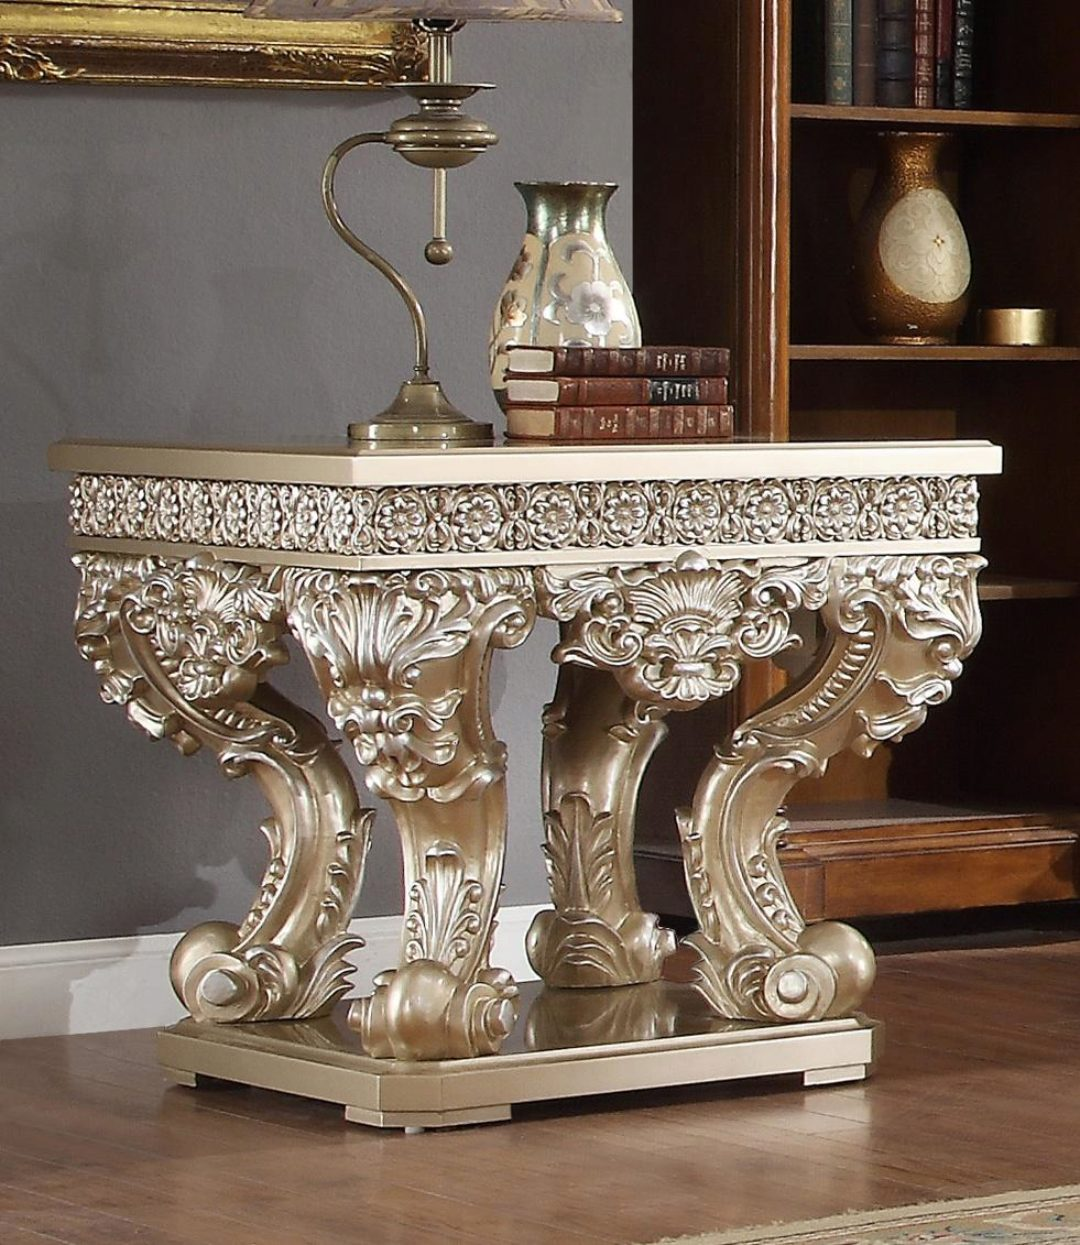 belle silver coffee table set 3pcs carved wood traditional